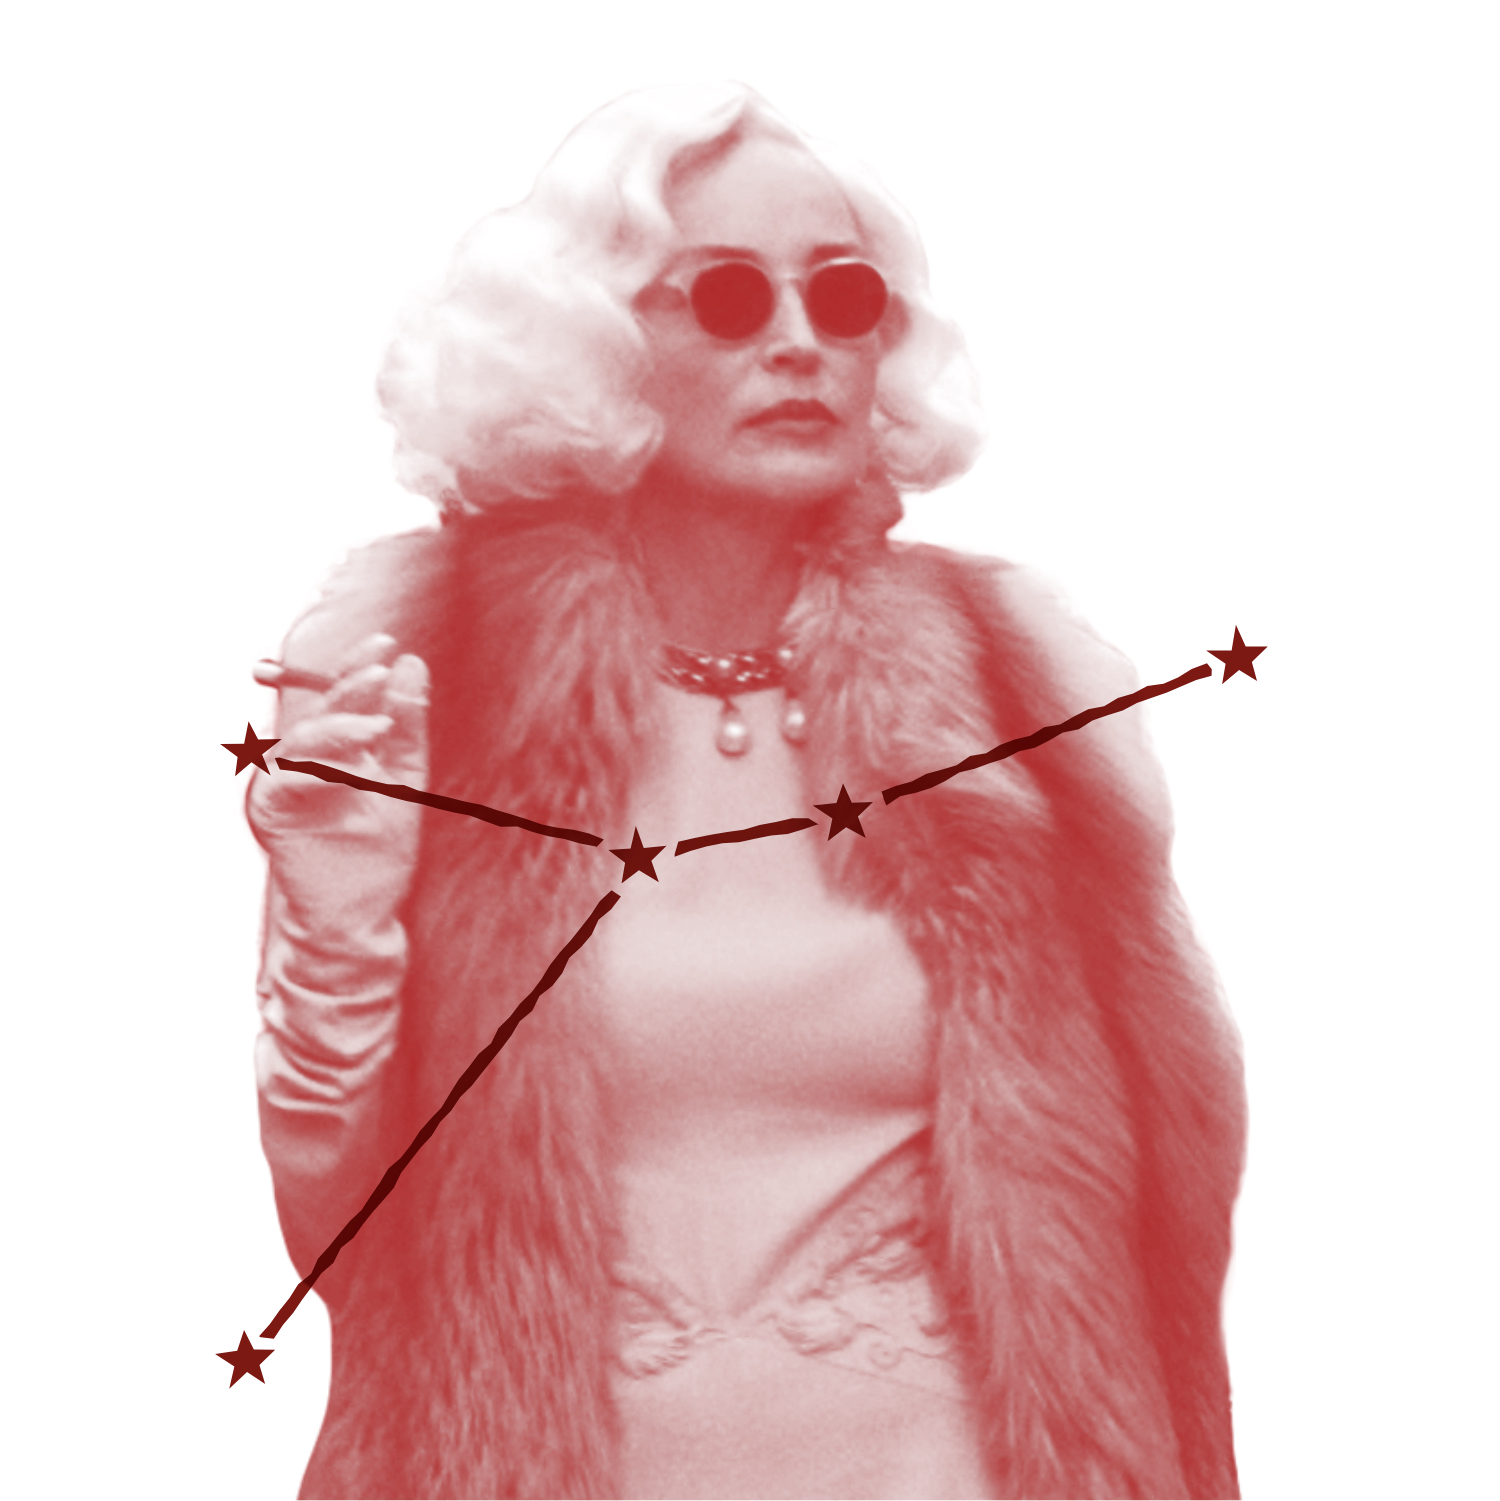 Lenore Osgood (played by Sharon Stone) is chic and tremendously camp in this still from Ratched. She wears white gloves that match her platinum bob, plus furs, pearls, and a pair of sunglasses. (But where's the monkey?) Over the image is an illustration of Lenore's zodiac constellation.